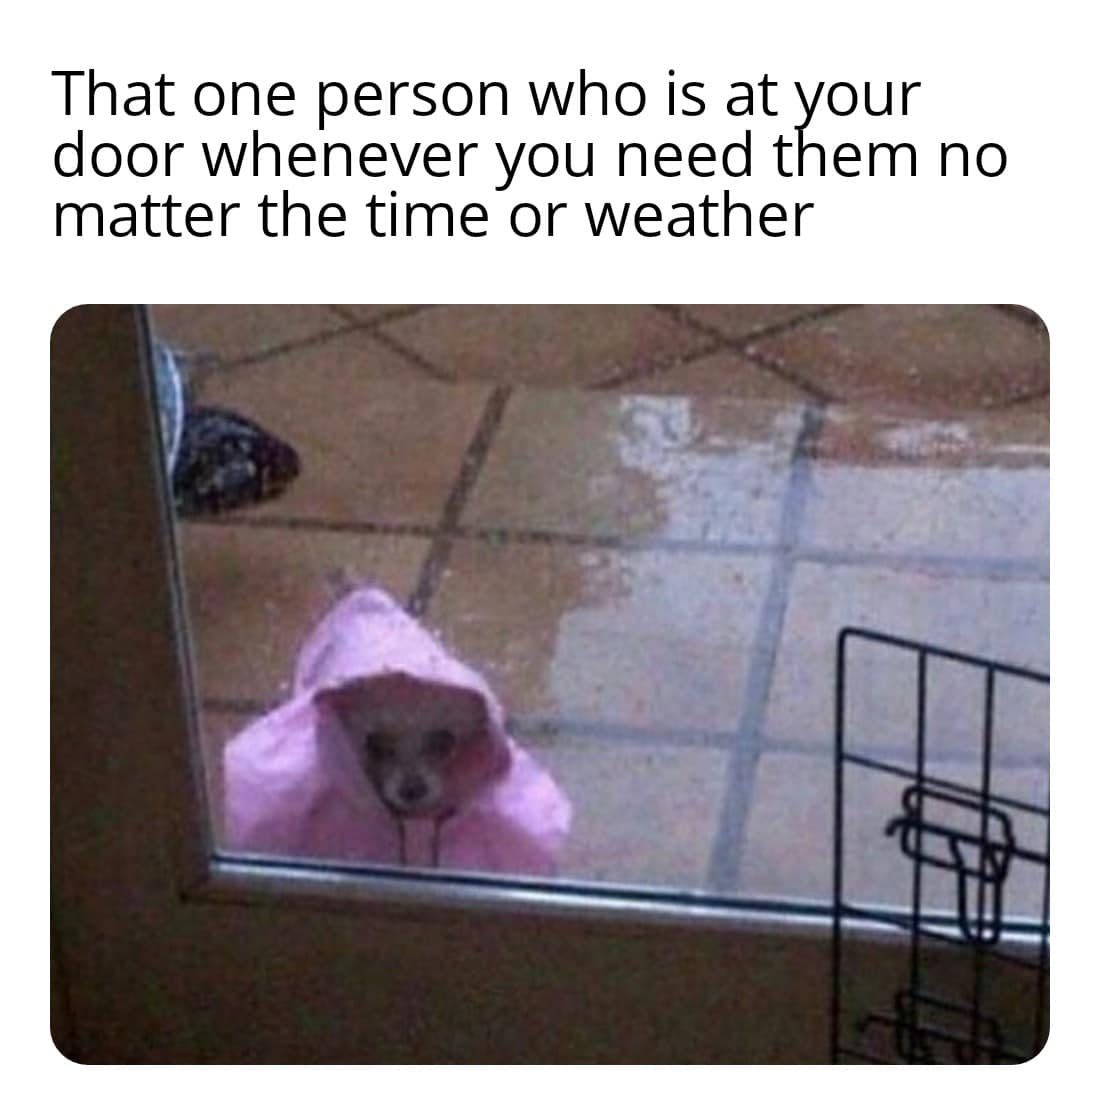 Wholesome memes, Theyre Wholesome Memes Wholesome memes, Theyre text: That one person who is at your door whenever you need them no matter the time or weather